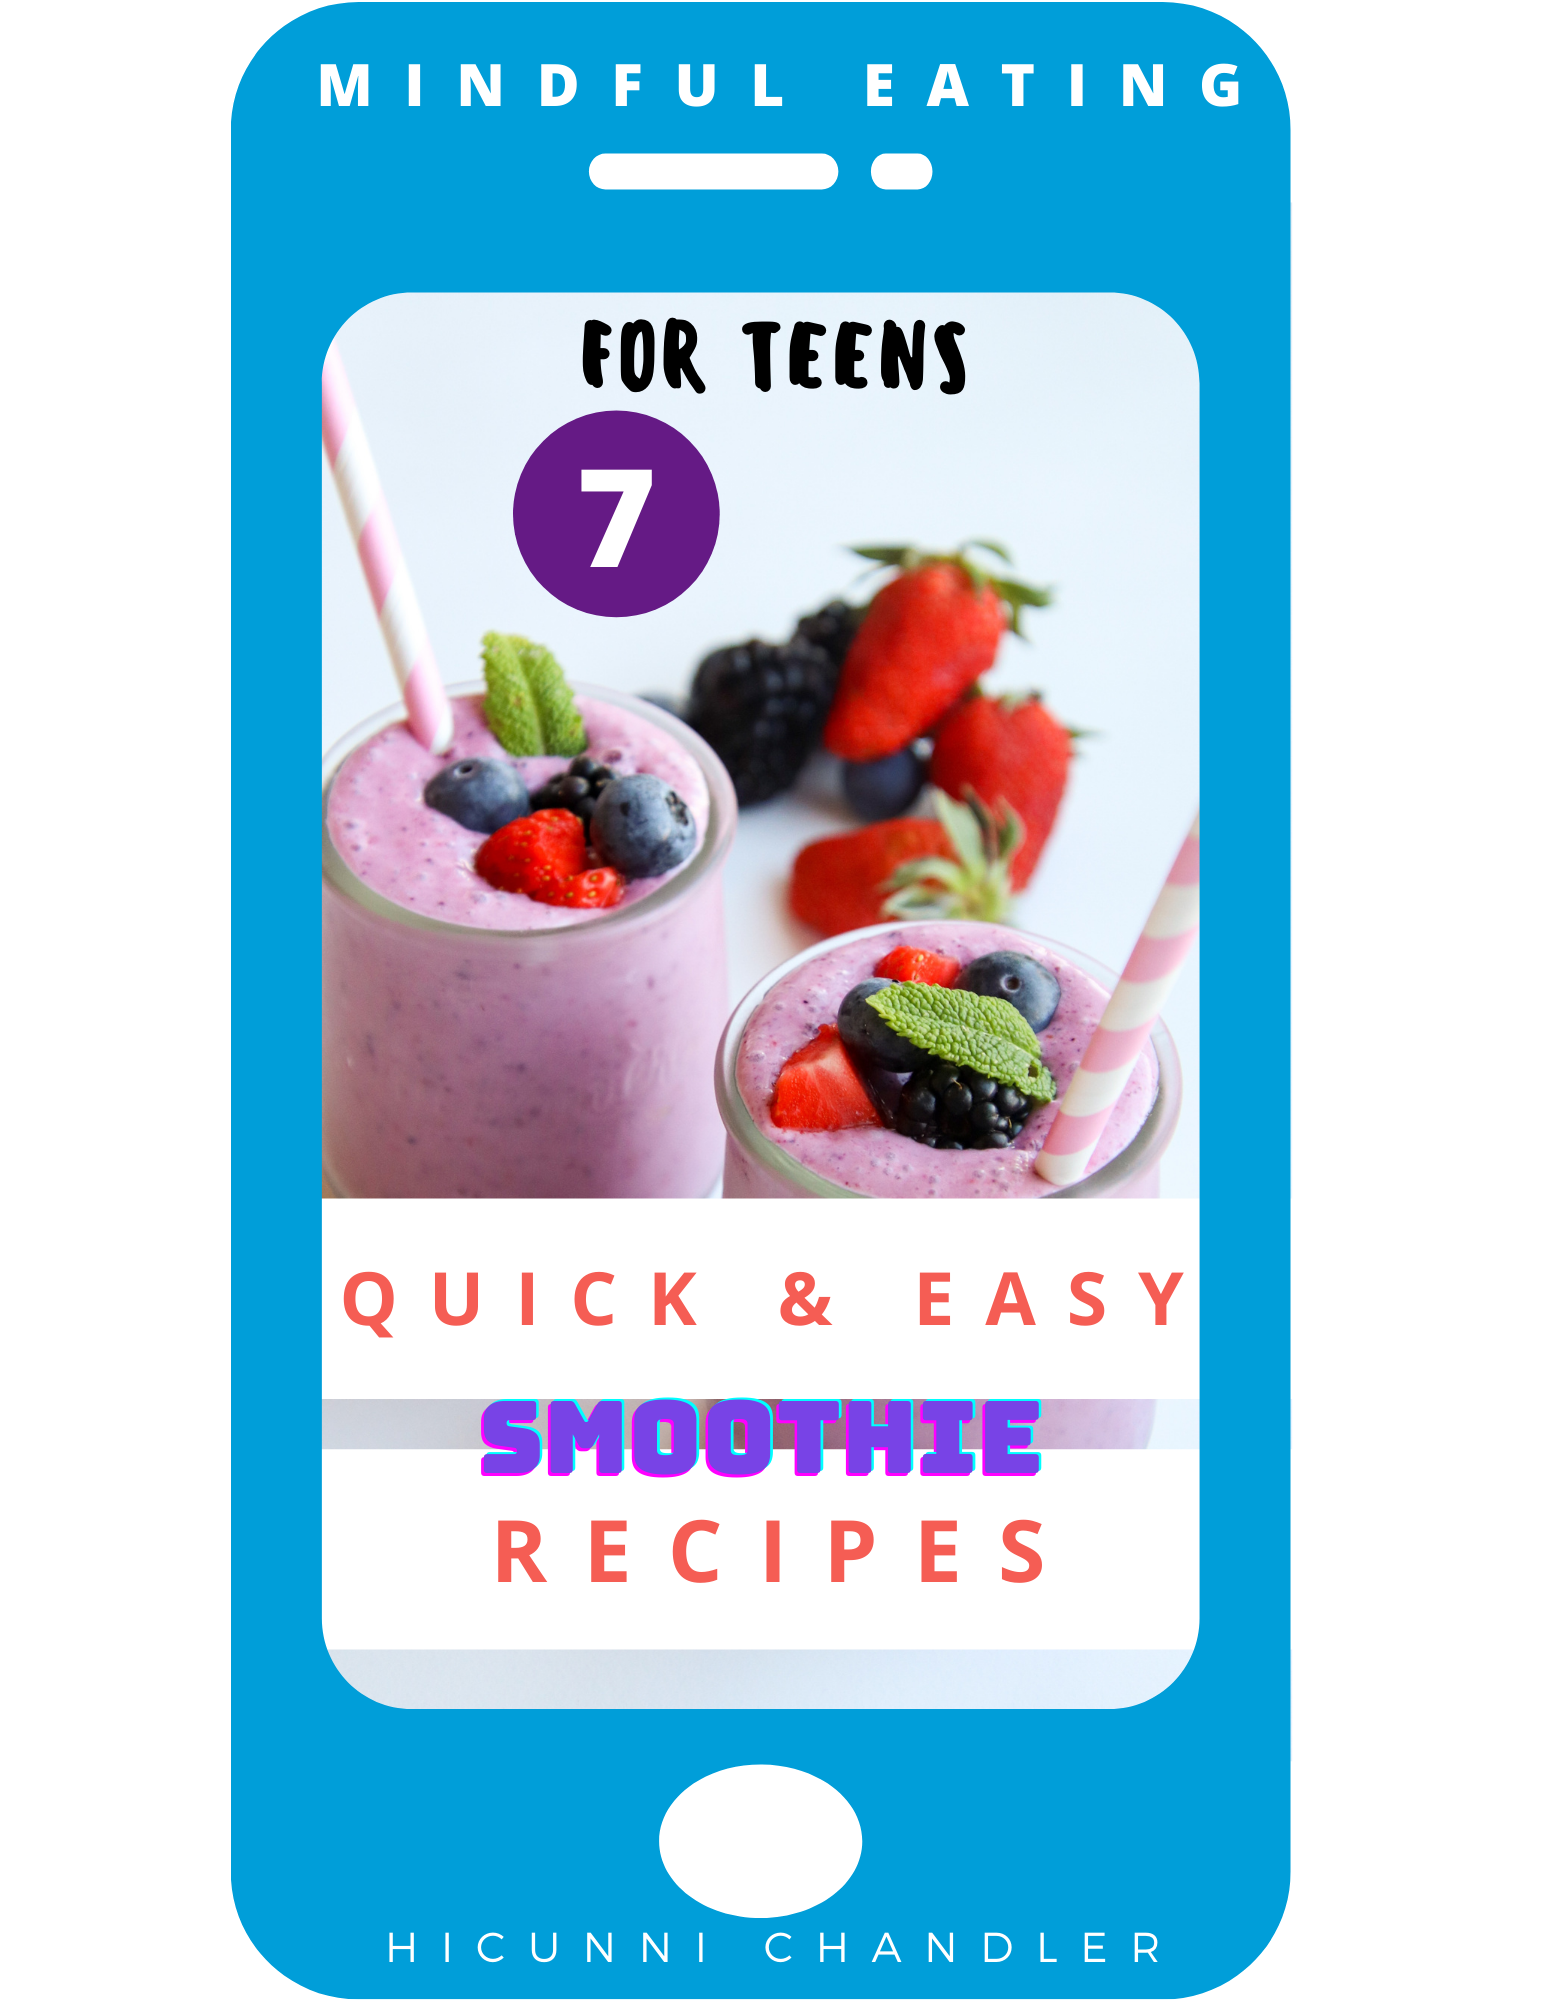 Pre-order Mindful Eating For Teens 7 Quick and Easy Smoothie Recipes_Smoothies